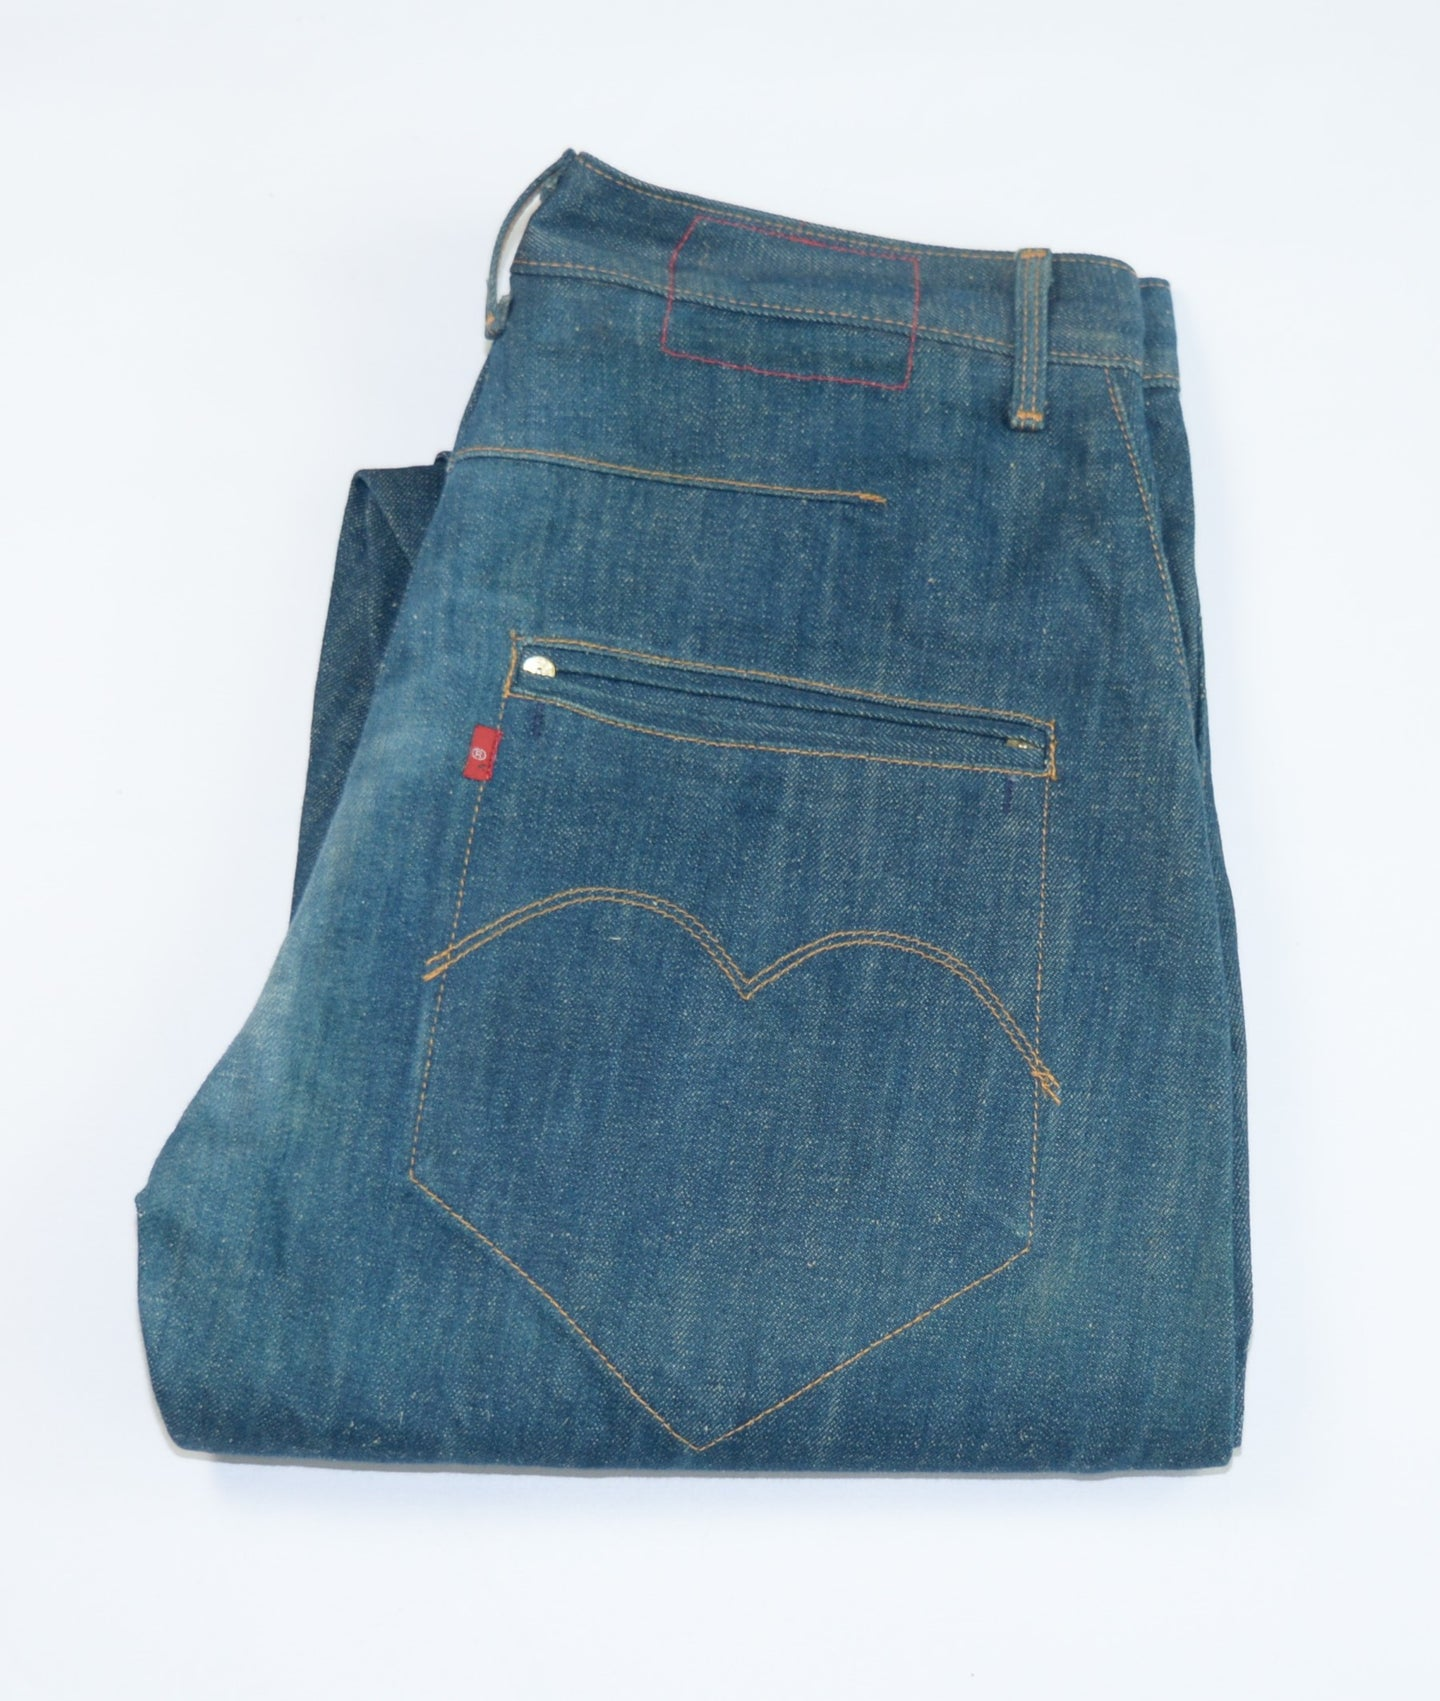 Levi's (Engineerd) - 10th anniversary edition 488/549 - Selvedge (Hemp) - Size 32/32